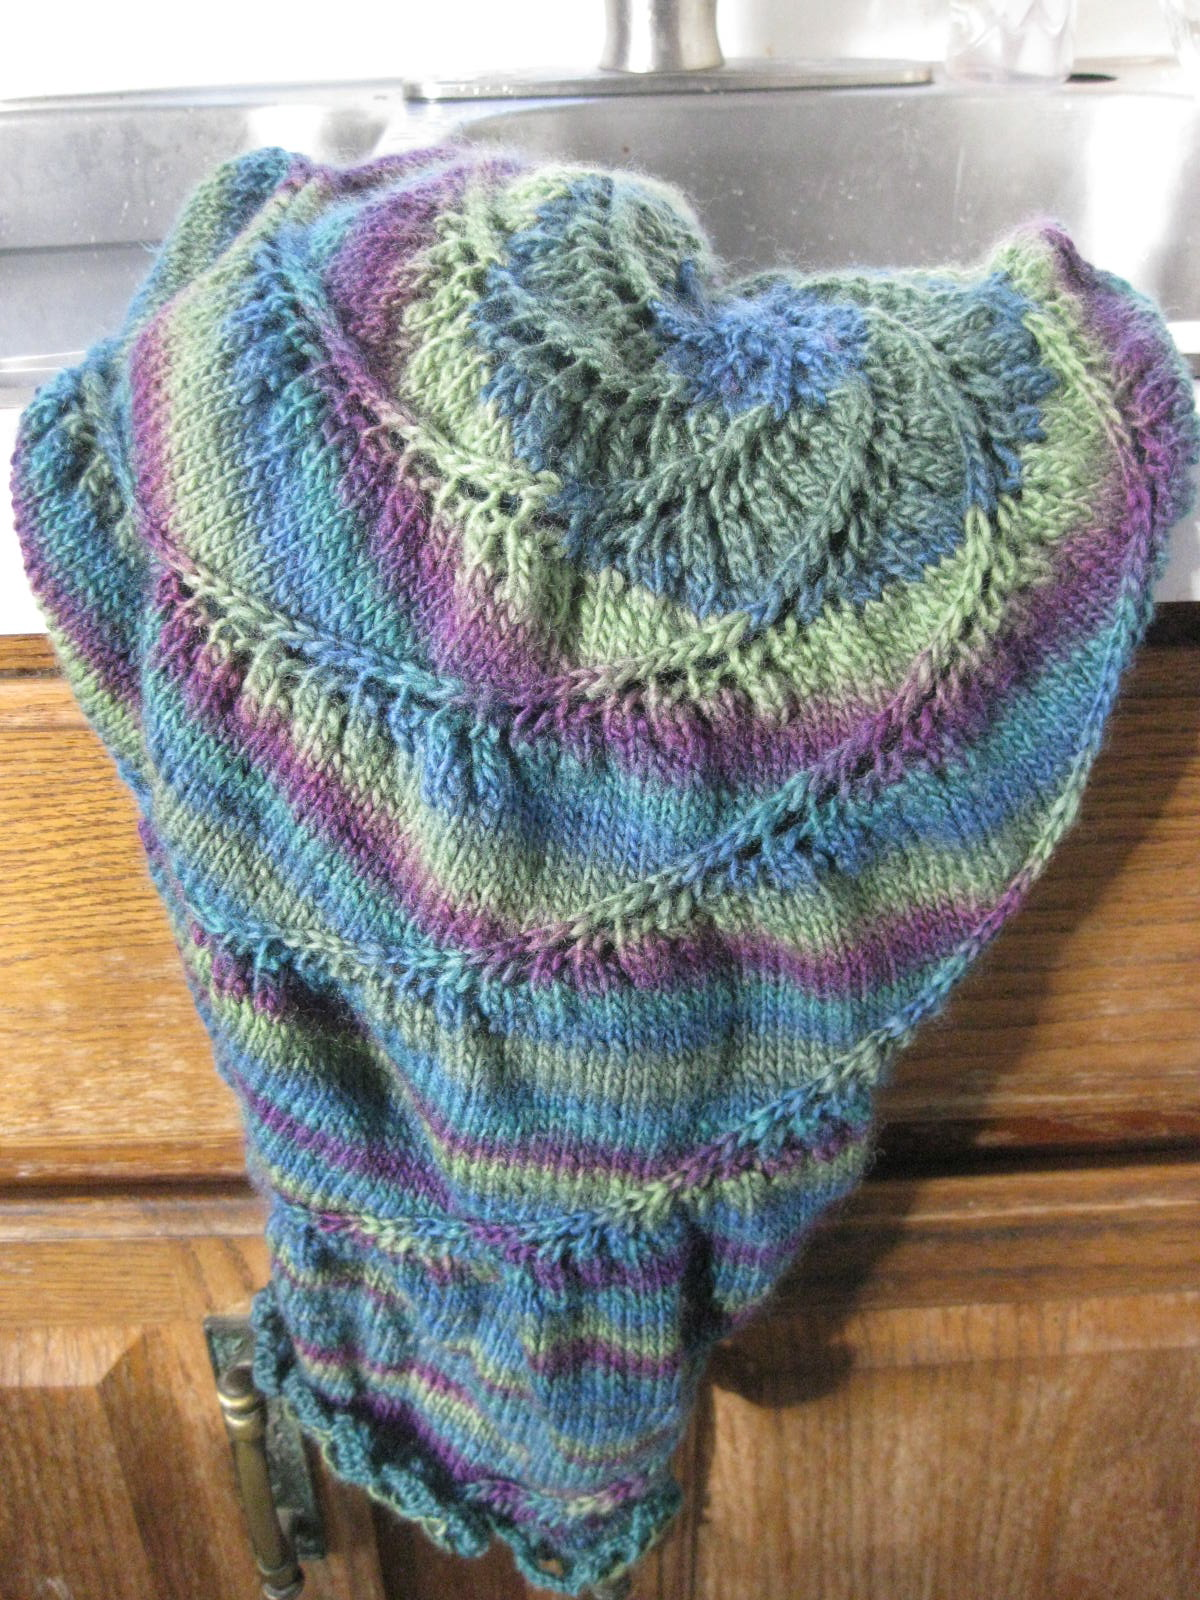 wildknits: Vortex Shawl - How to Block a Circular Item or What I Do ...